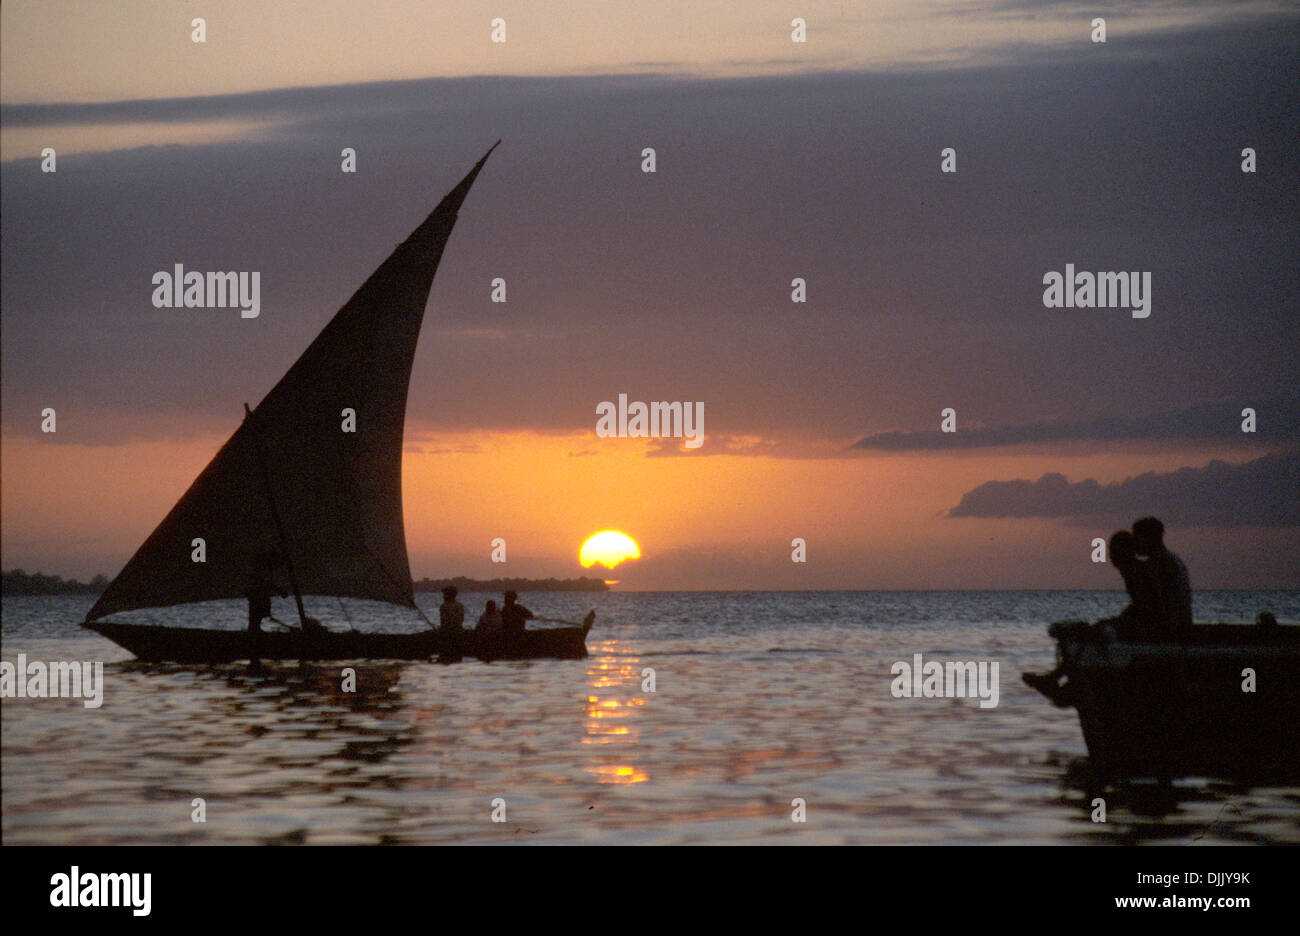 young-people-watching-a-zanzibar-dhows-d